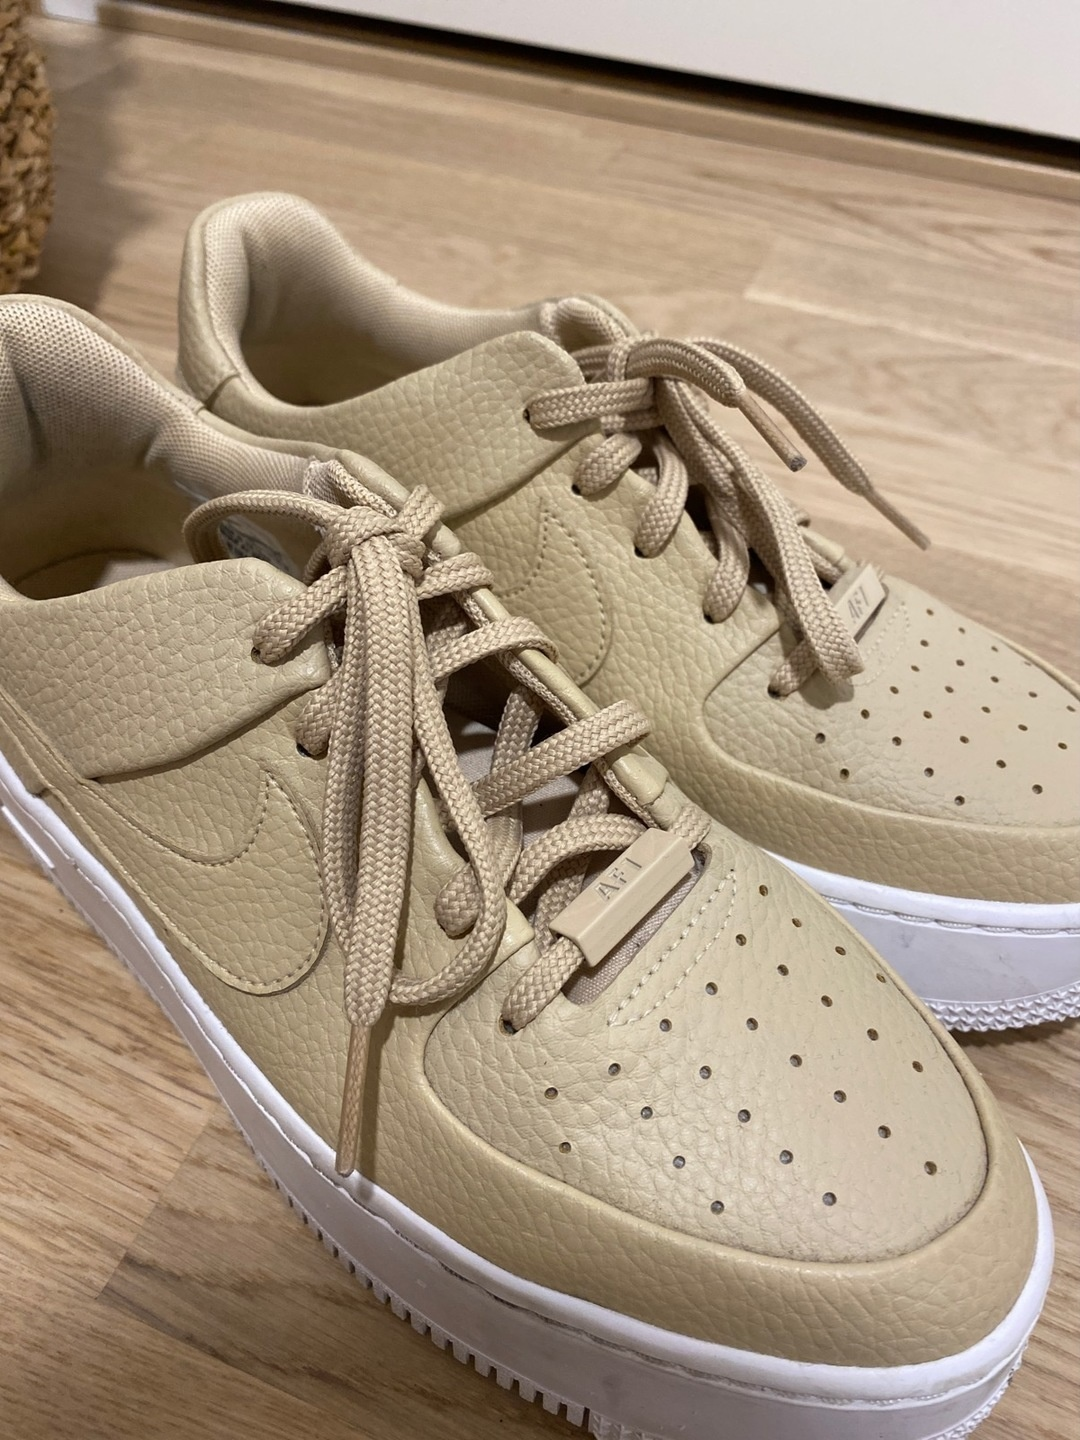 Women's sneakers - NIKE photo 4